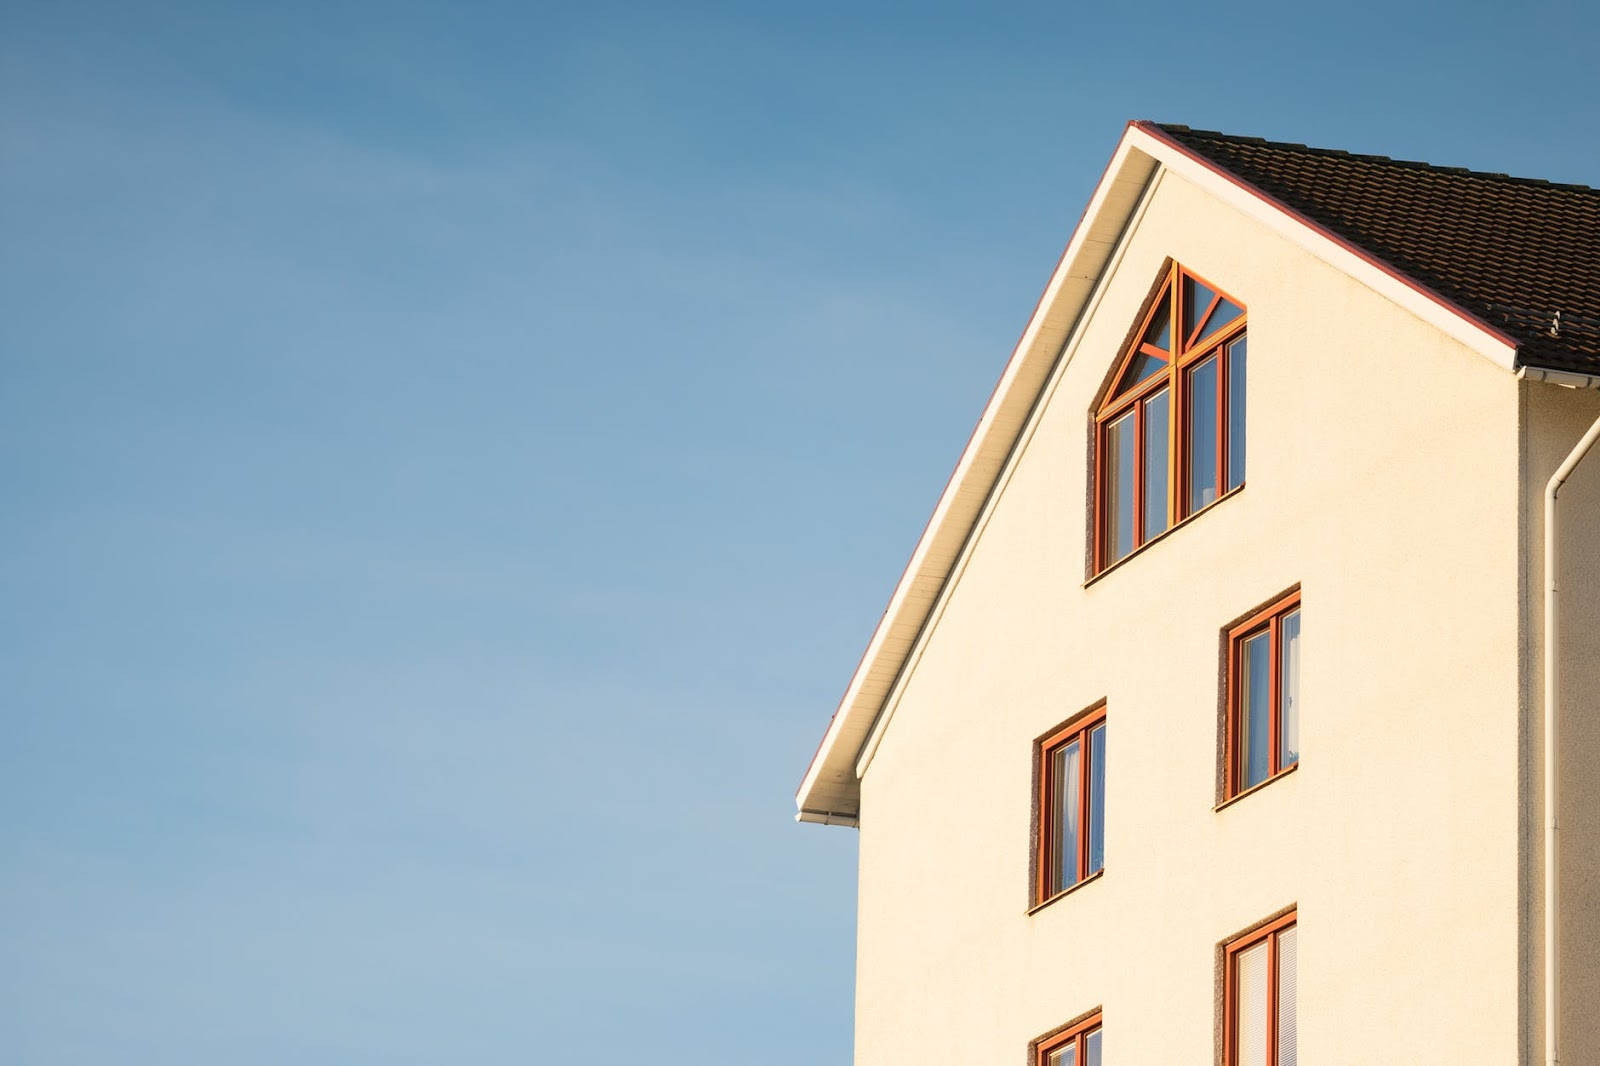 You Don't Have to Settle for the Current State of the Home You've Moved Into